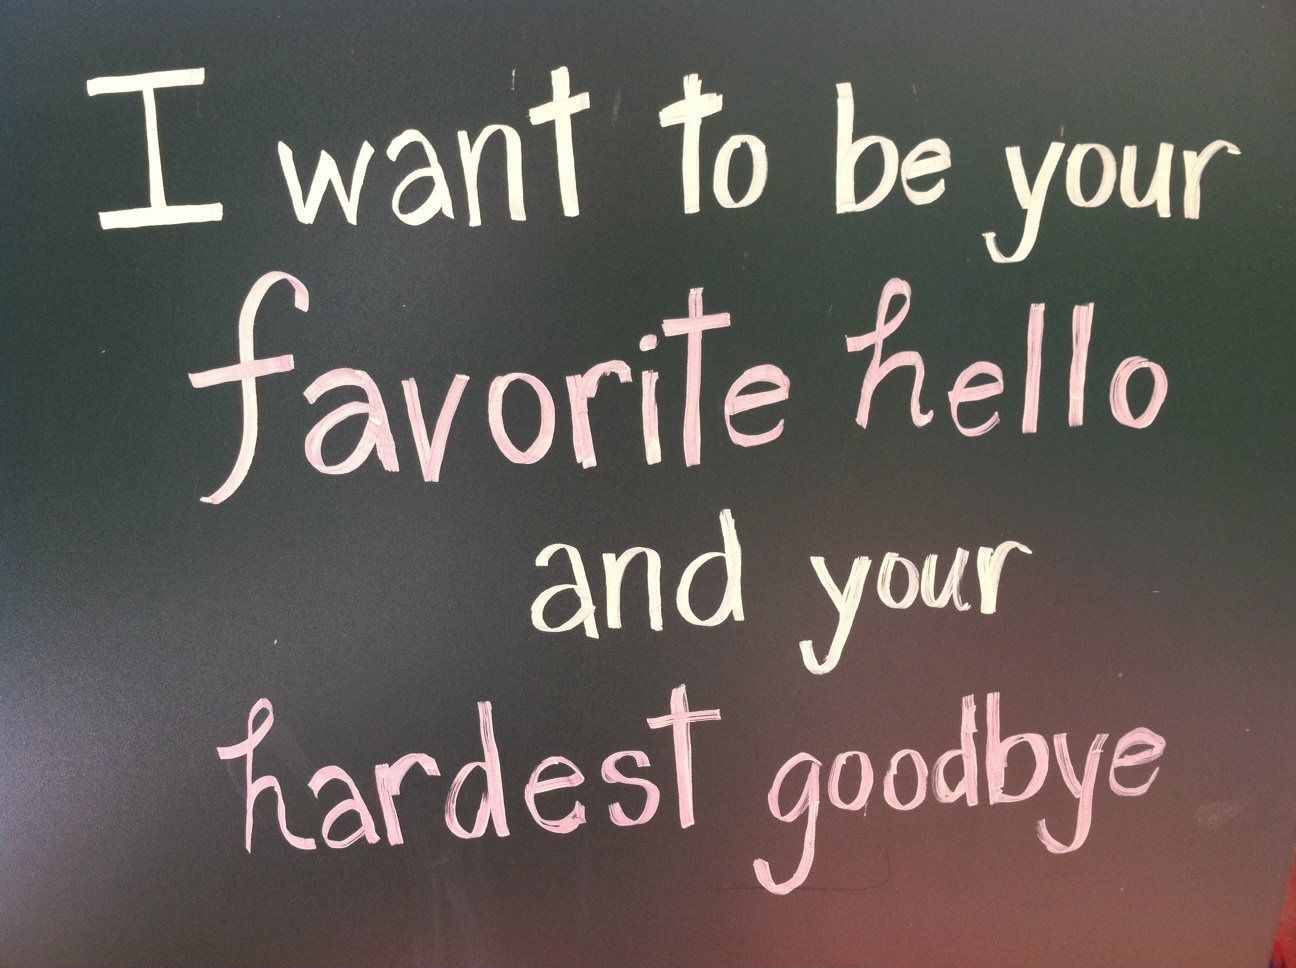 Favorite hello and hardest goodbye teen quotes girl quotes hello goodbye quote quotes